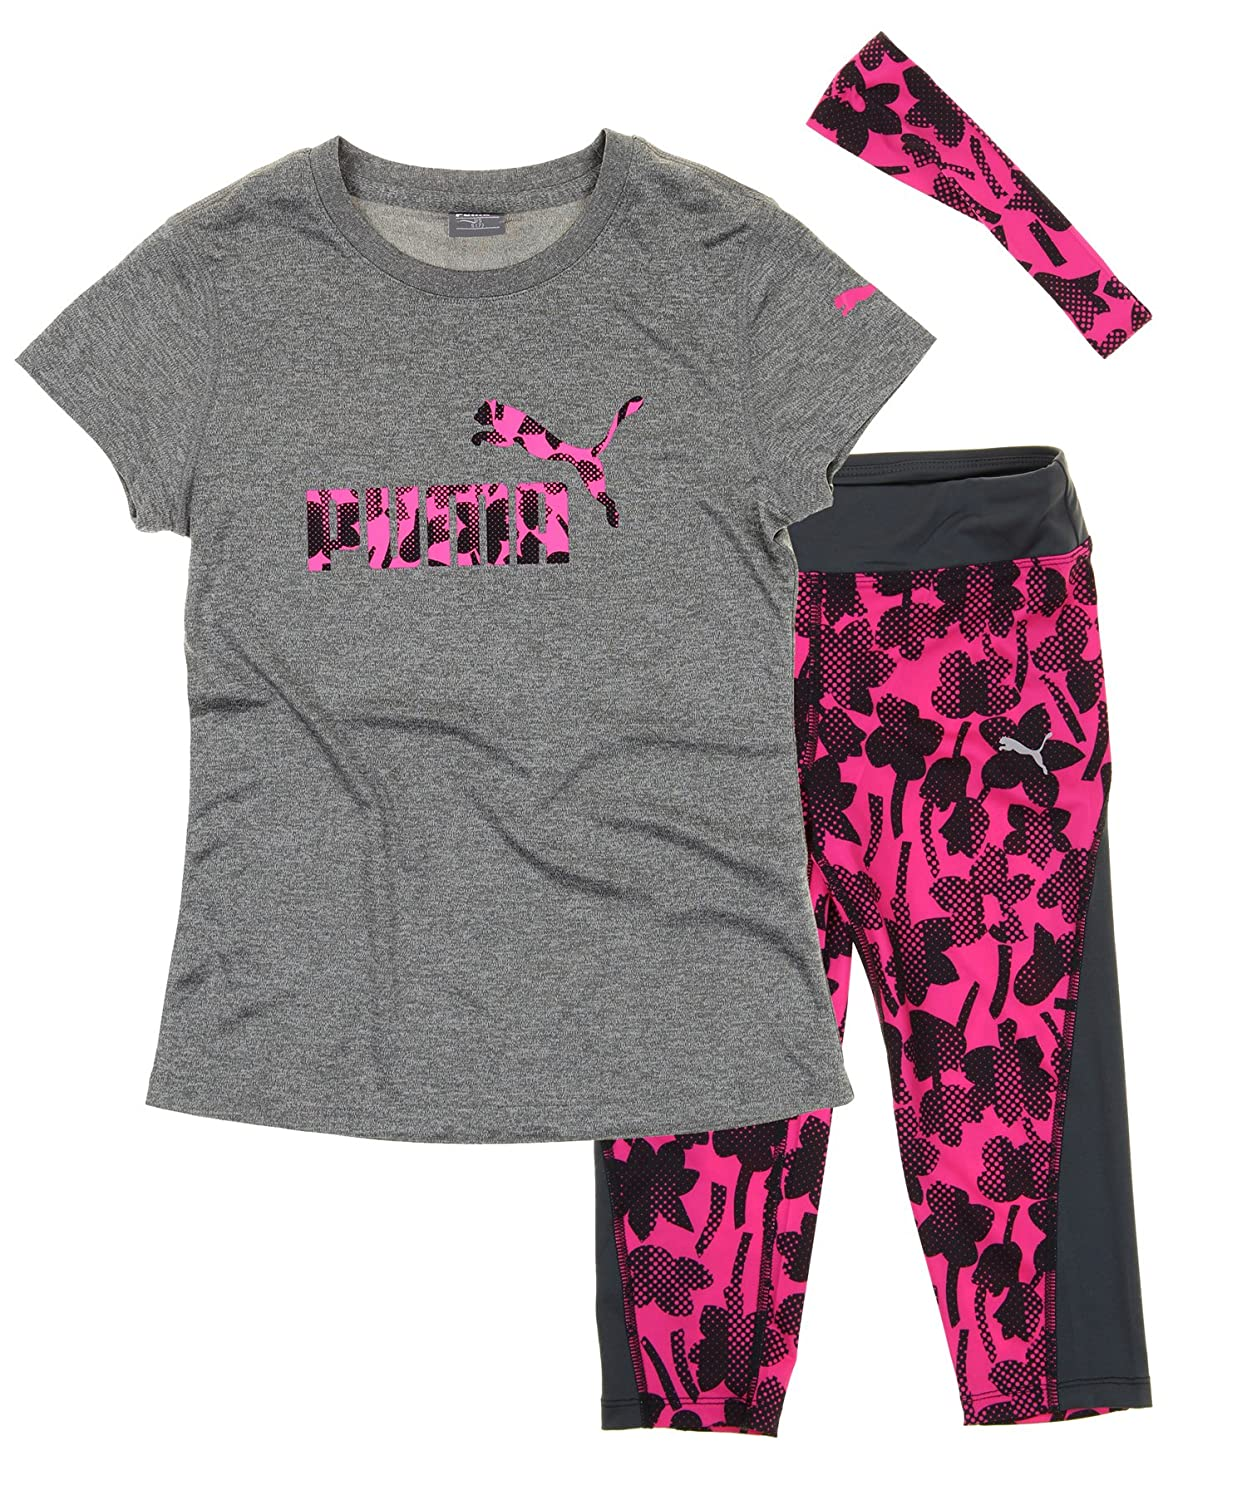 Puma Girls T-shirt, Capri Pant and Headband Matching Set Heather Grey) 00_666BKU_PU